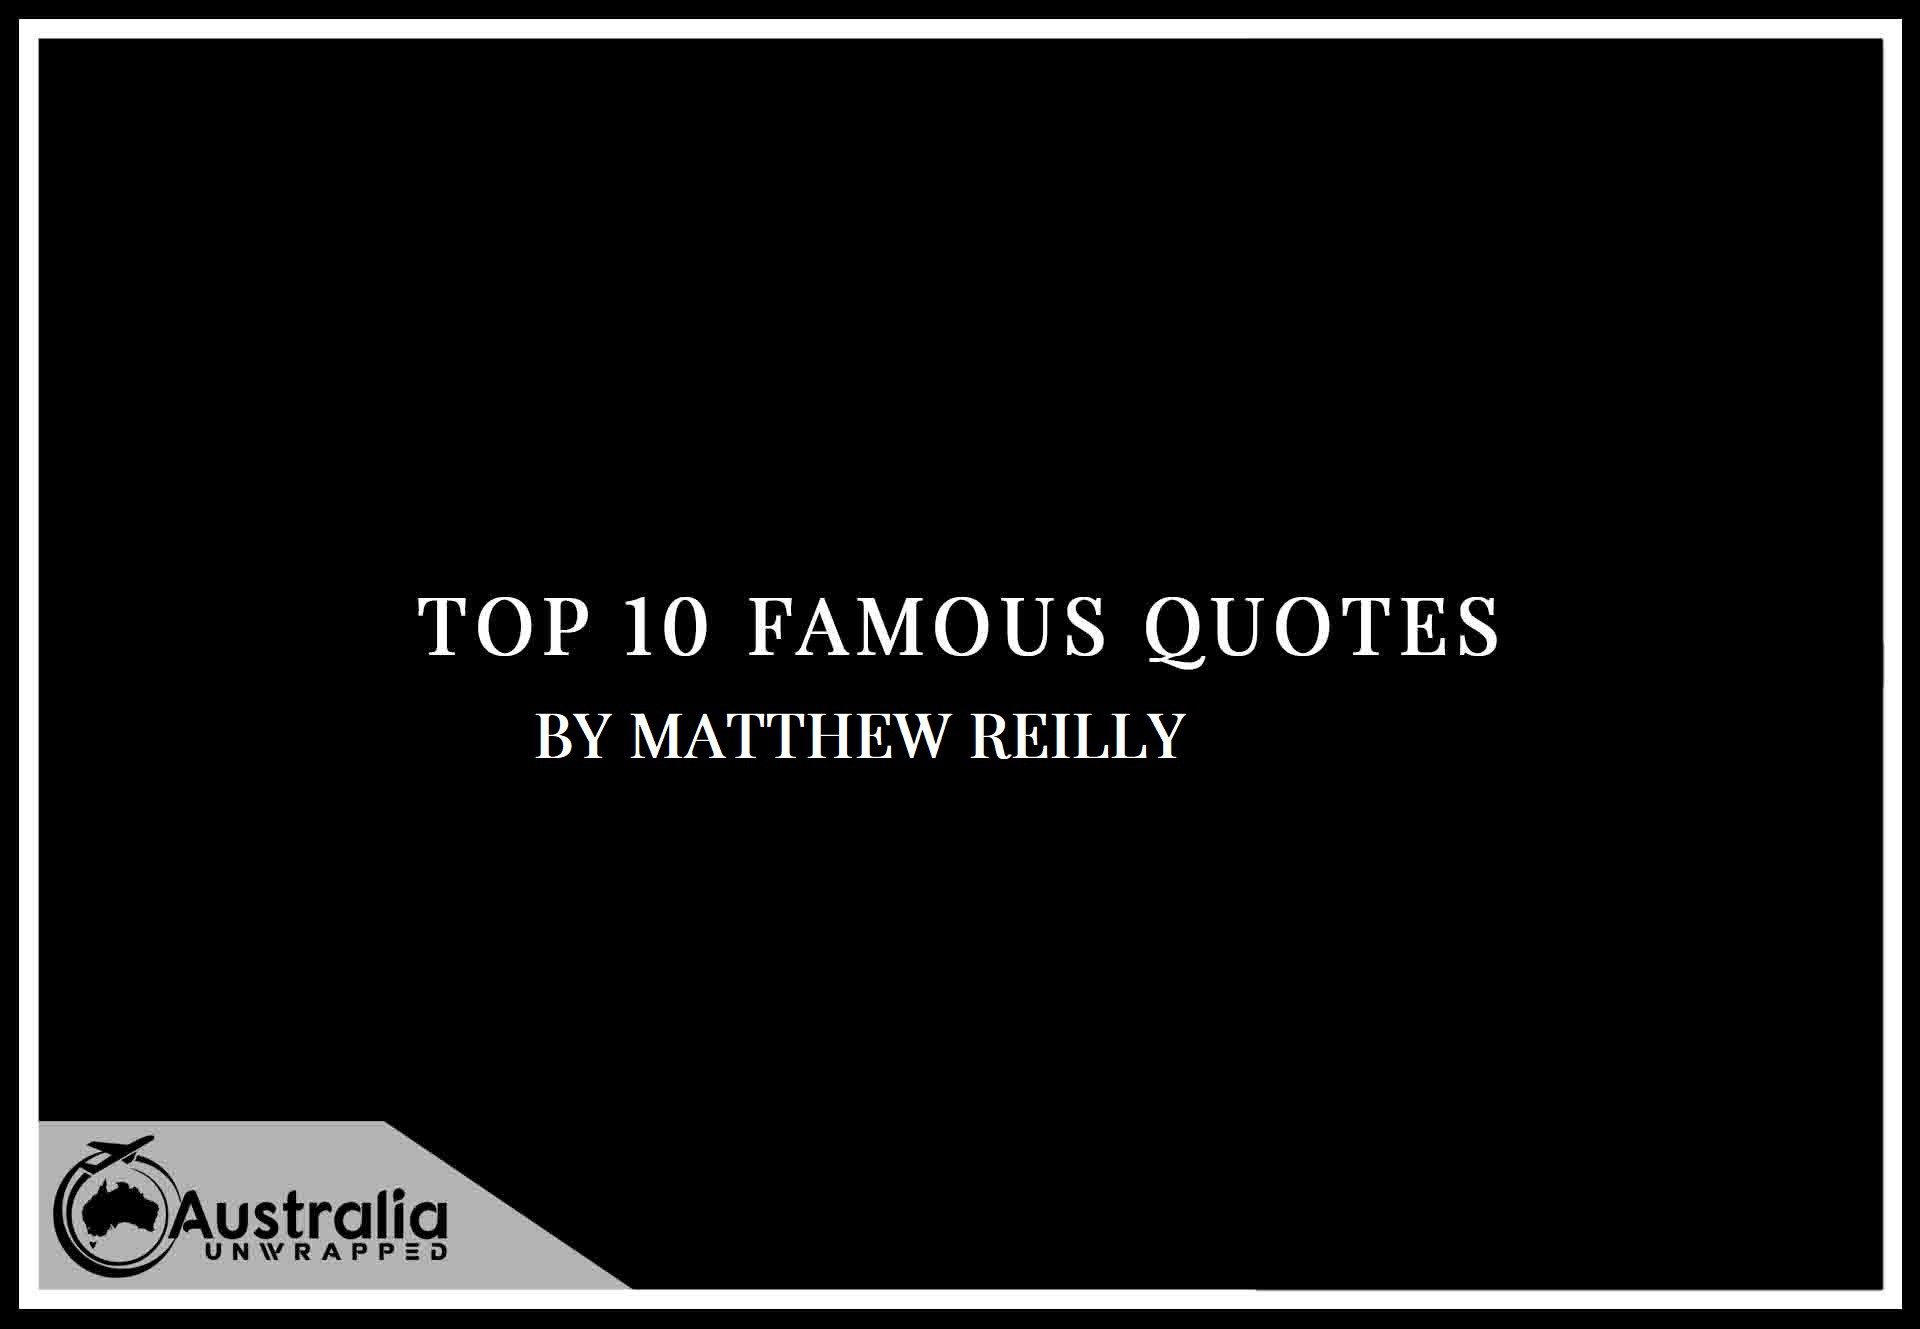 Top 10 Famous Quotes by Author Matthew Reilly